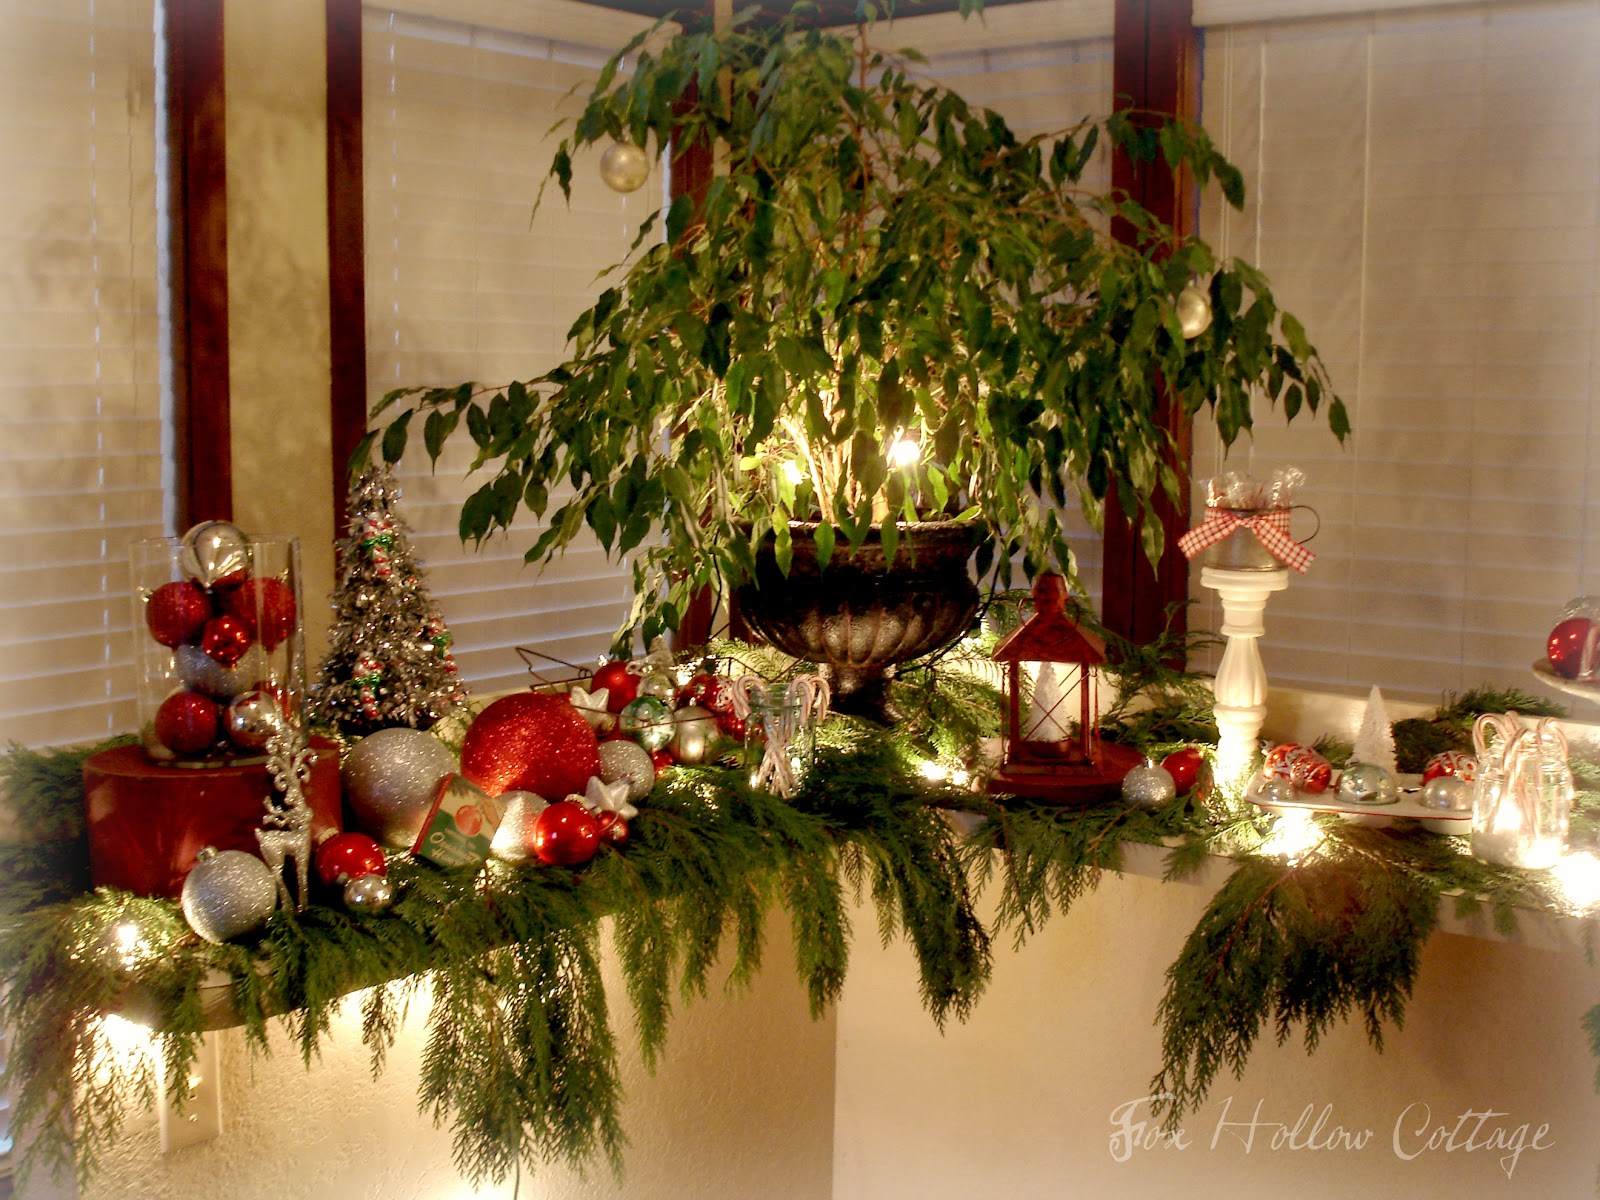 Thrifty Christmas Decorating with Cedar Boughs   Fox Hollow Cottage Thrifty Christmas Decorating with Cedar Boughs